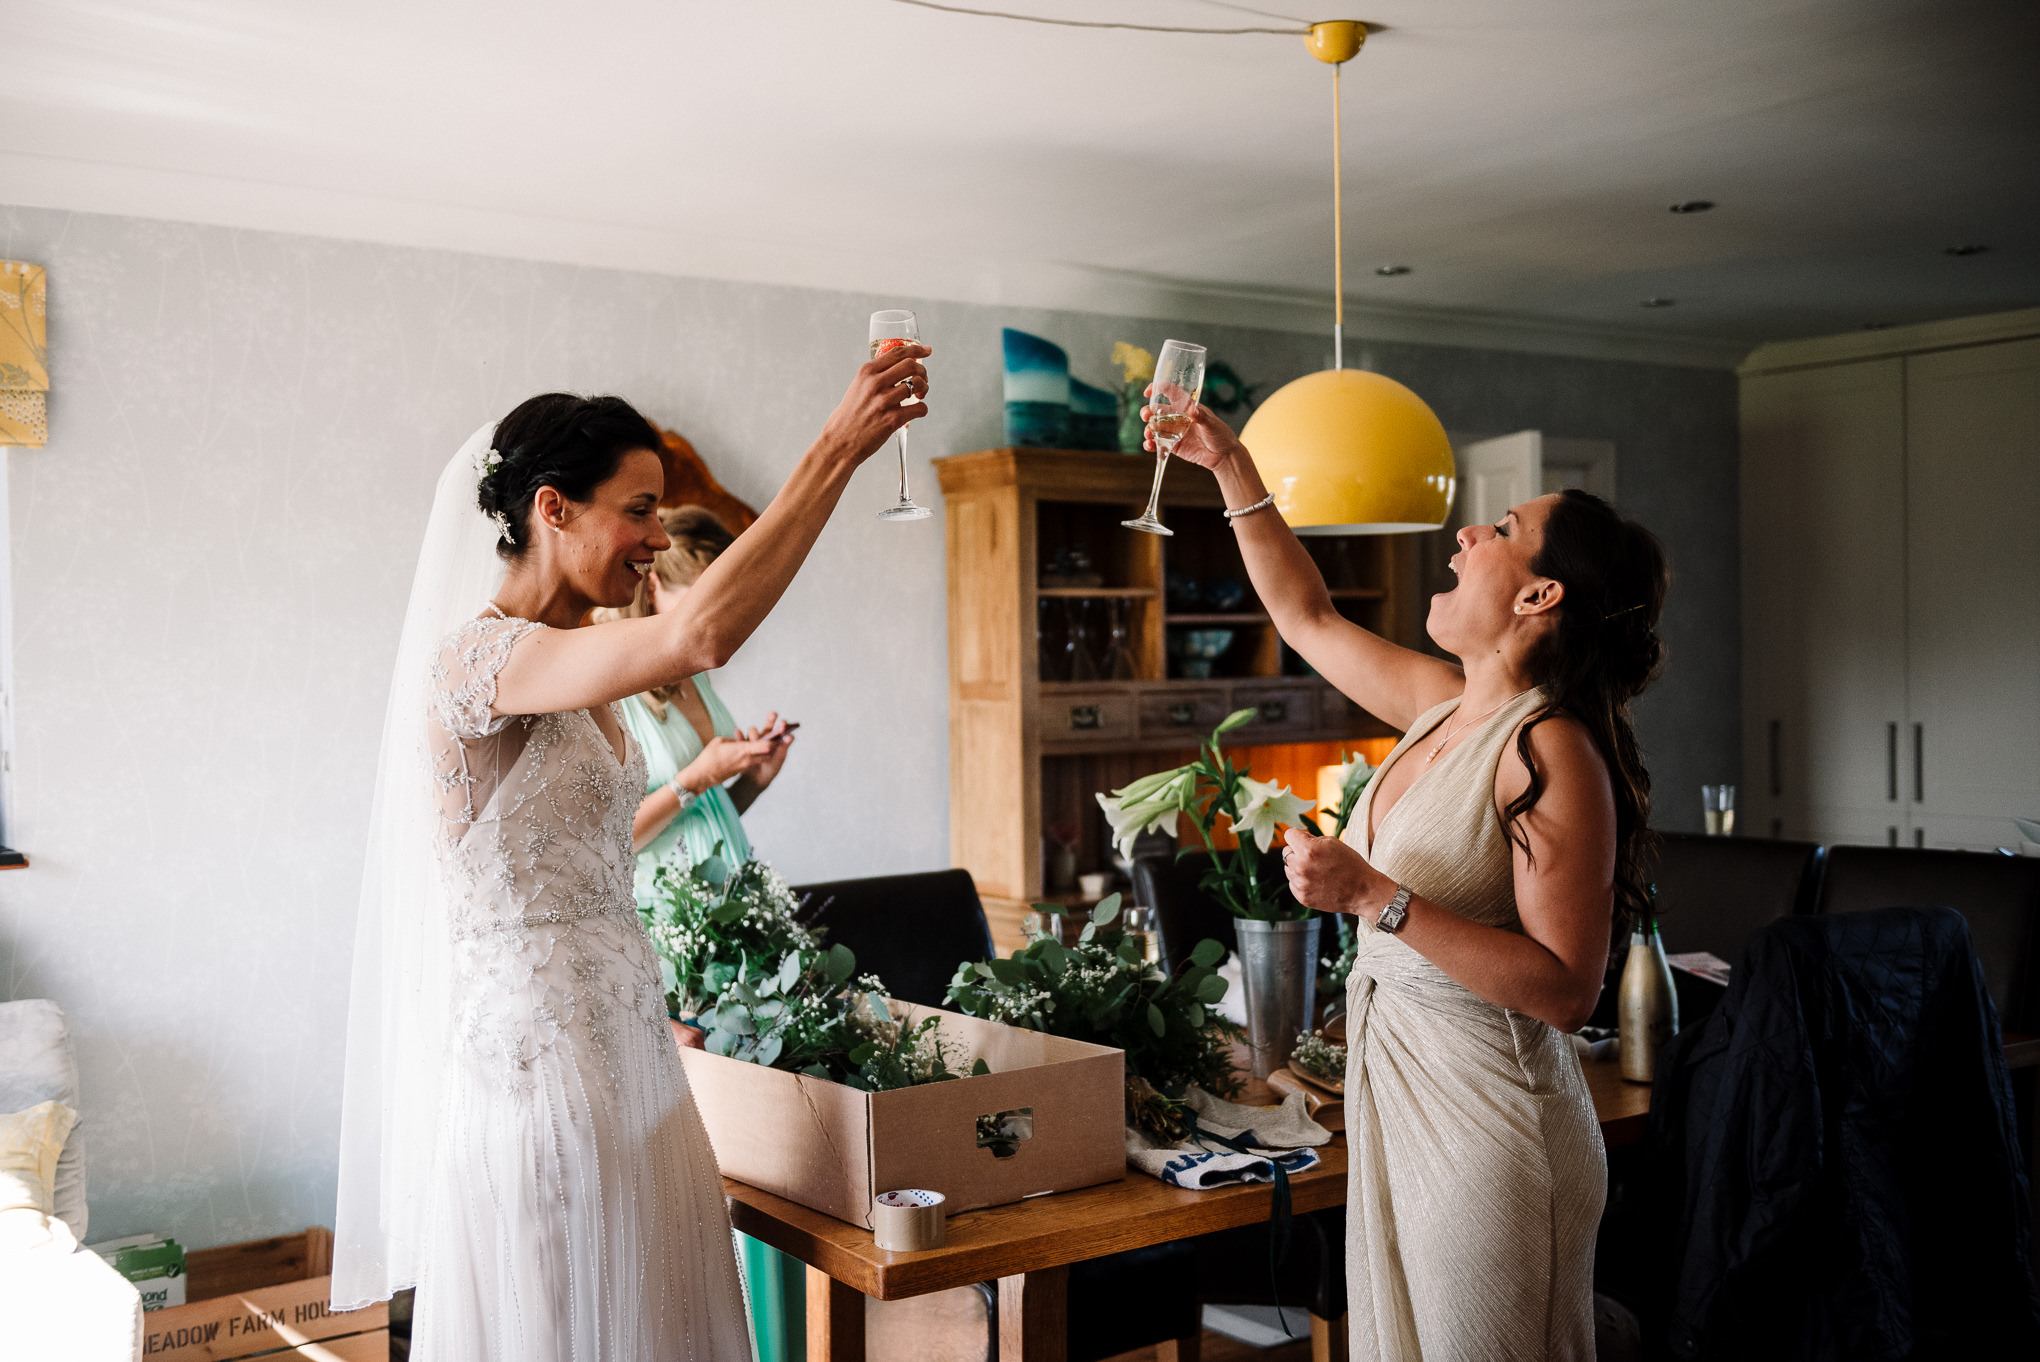 Cheers. Documentary photo of bride and bridesmaid celebrating